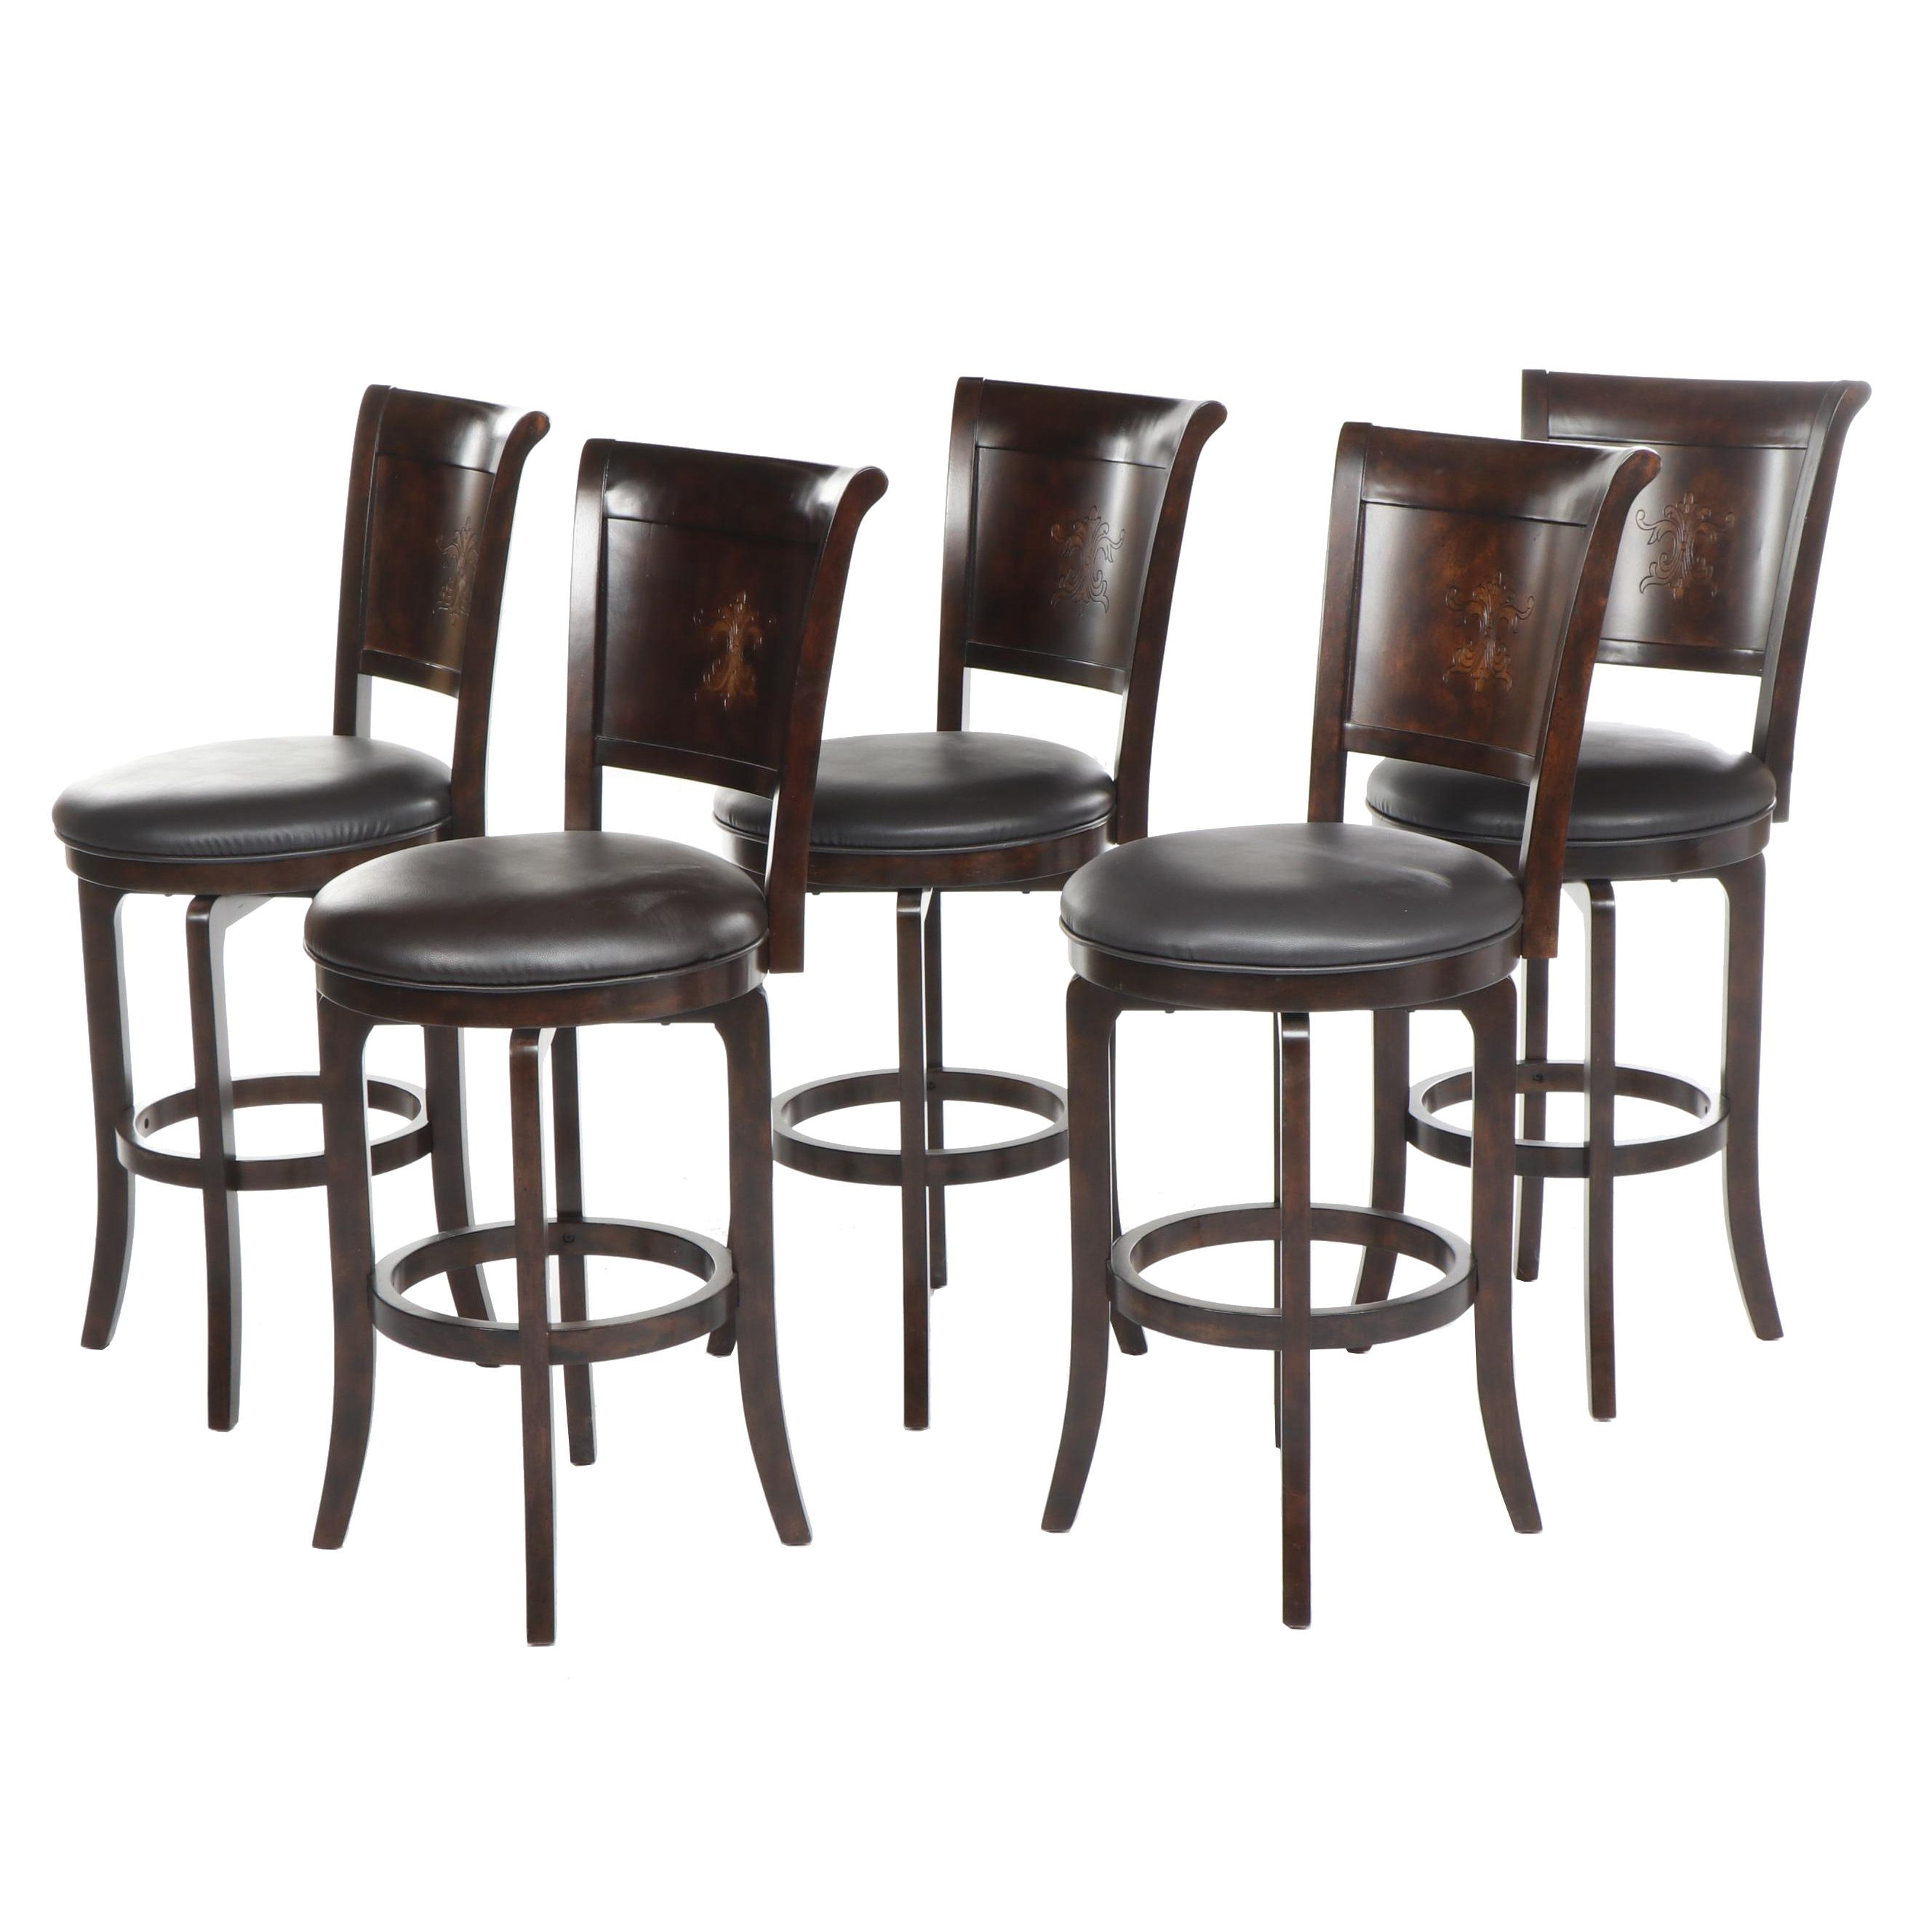 Contemporary Hillsdale Furniture Swivel Seat Stools with Faux Leather Upholstery